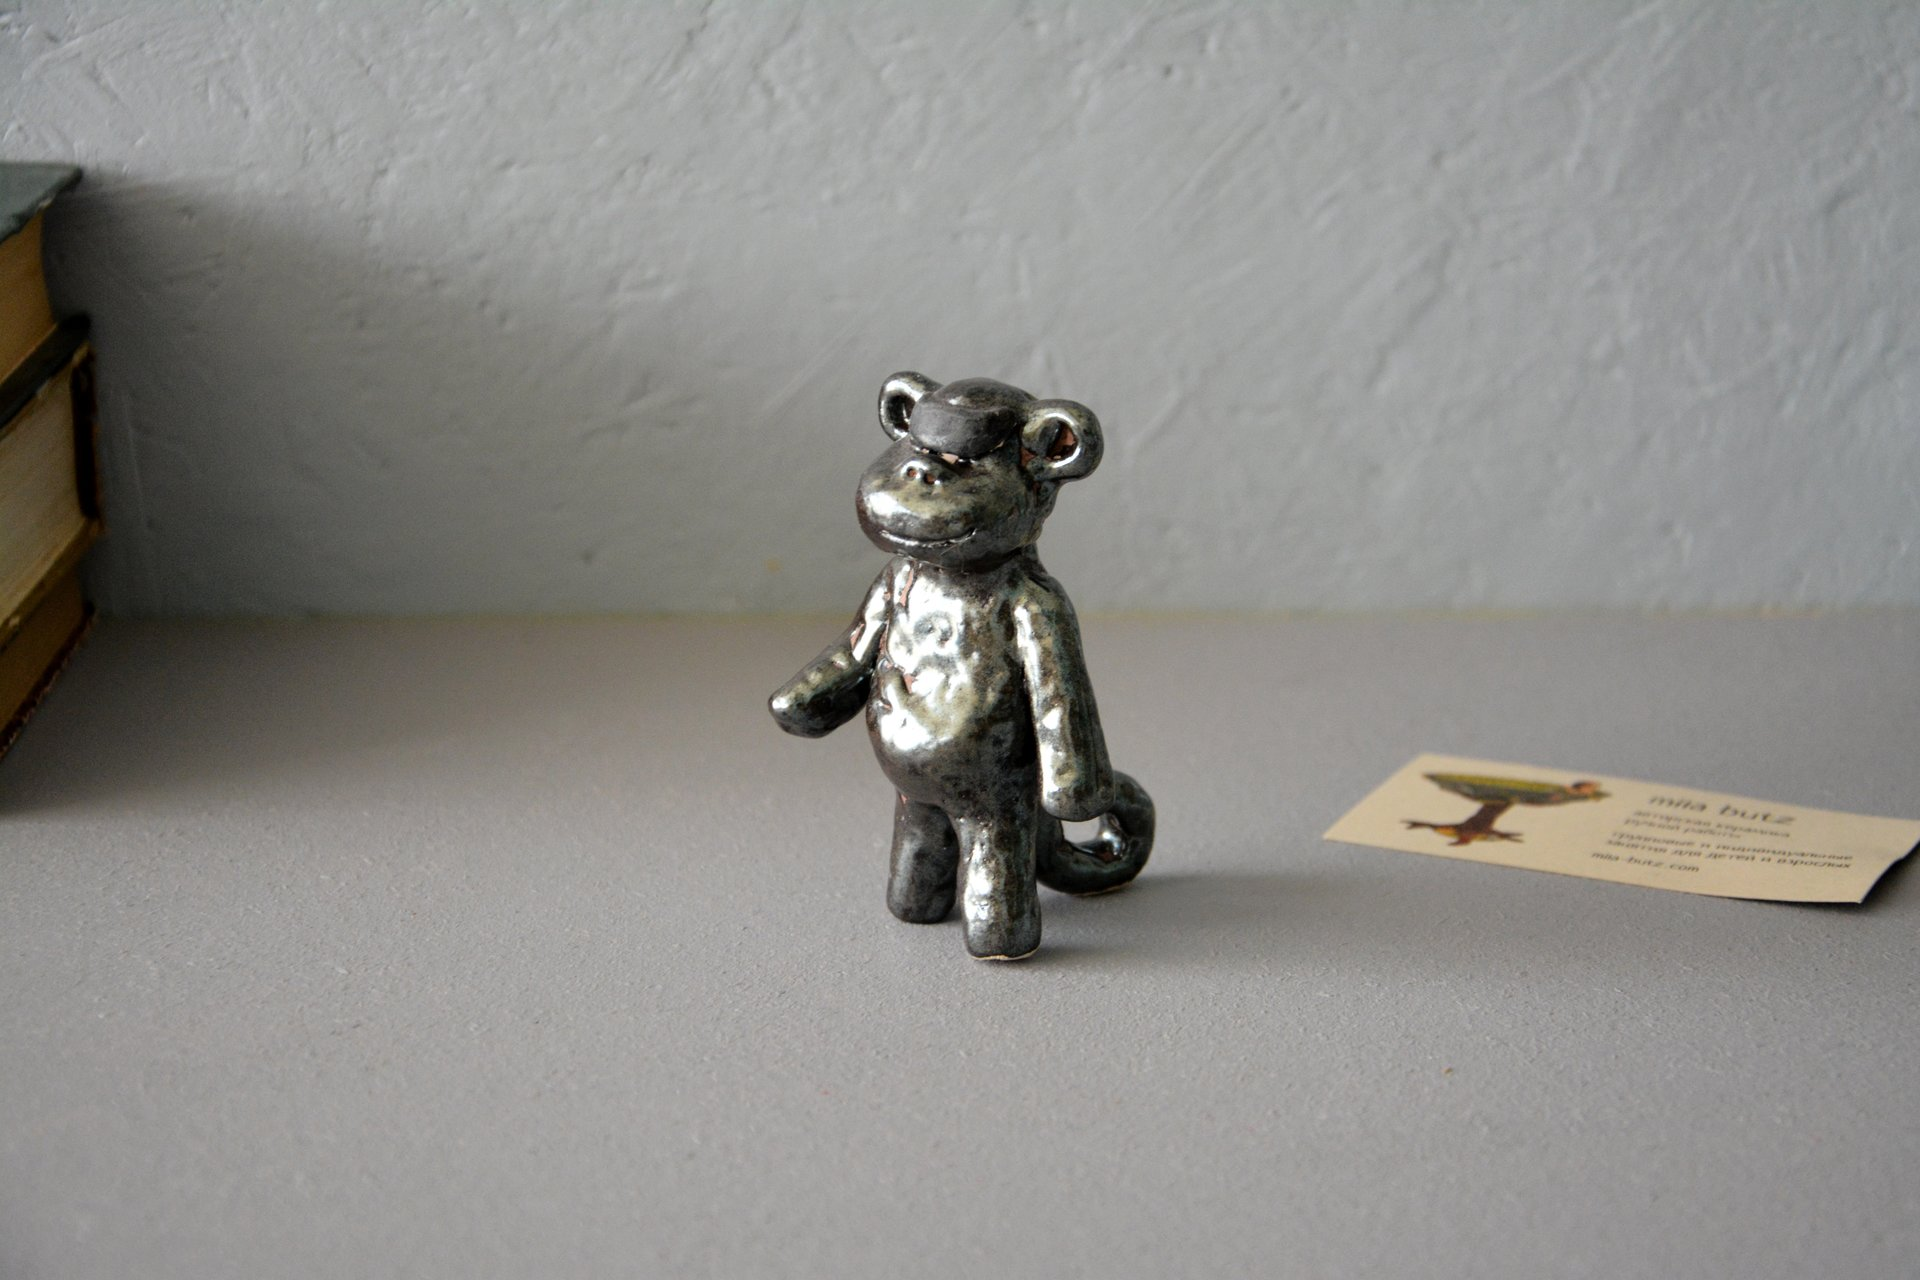 Robot — Monkeys - Animals and birds, height - 9 cm, photo 3 of 4.